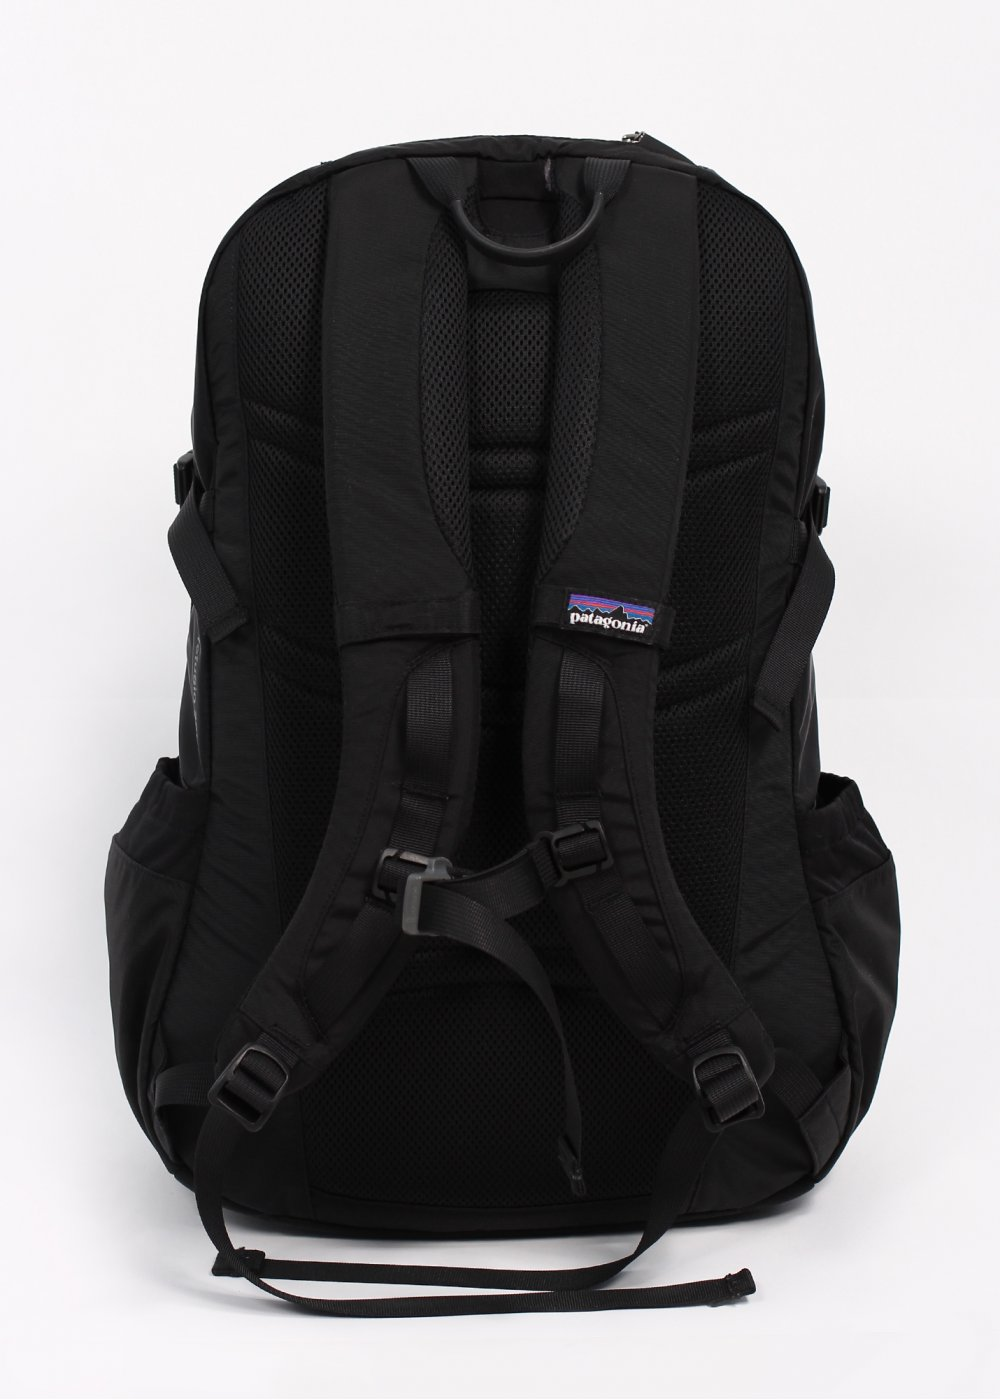 Black Patagonia Backpack filled with Cliff Bar Swag